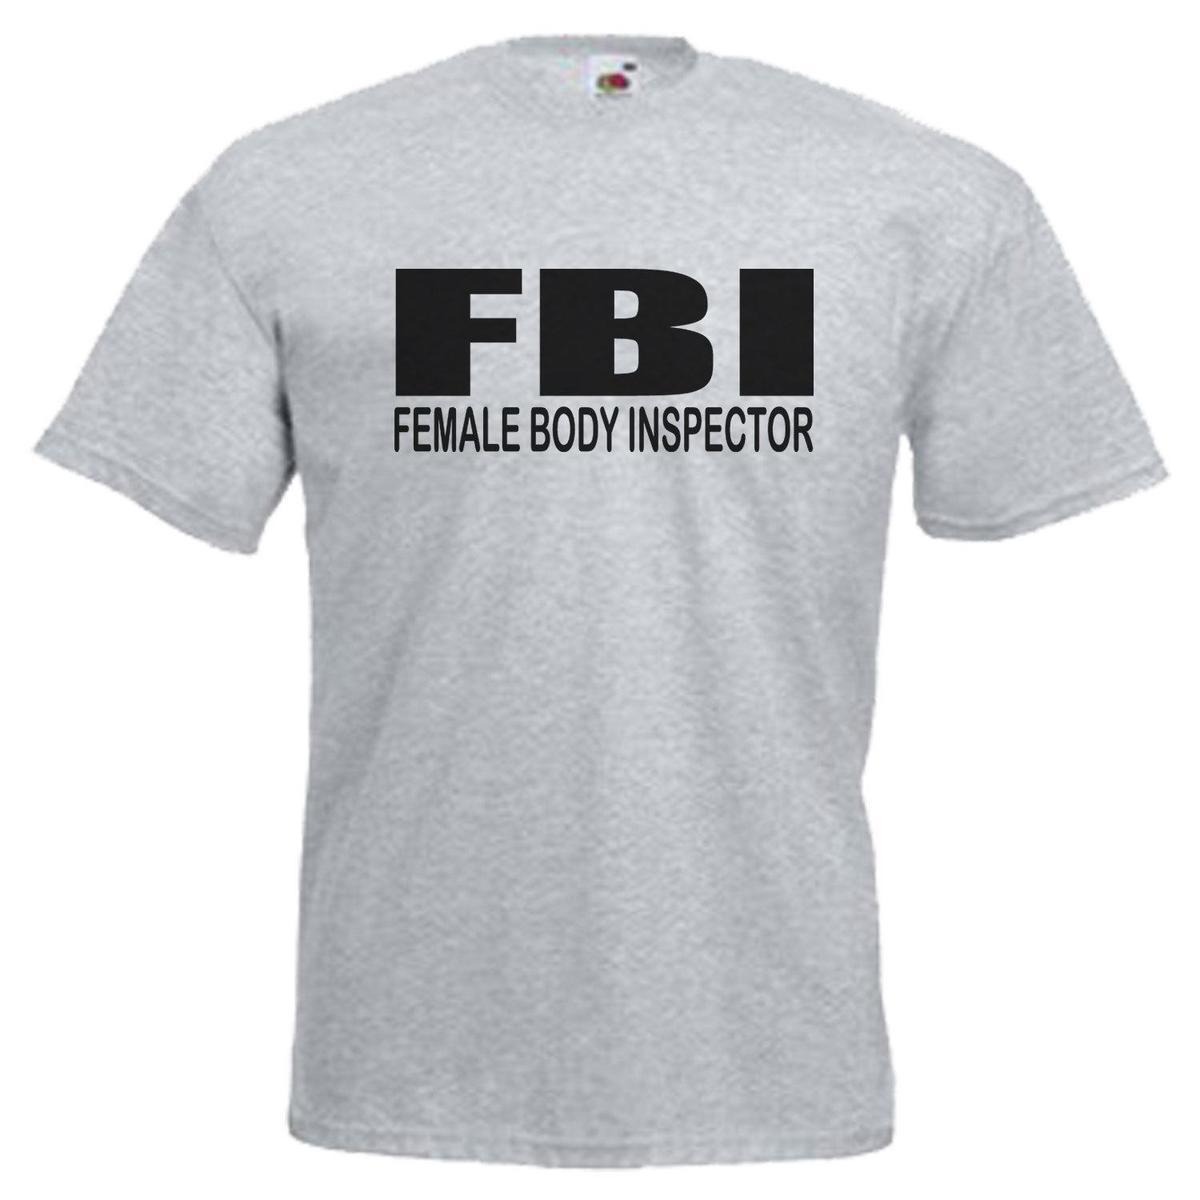 5bbb83988afb6b FBI Female Body Inspector Adults Mens T Shirt 12 Colours Size S 3XL Online  Buy T Shirts Tna Shirts From Amesion37